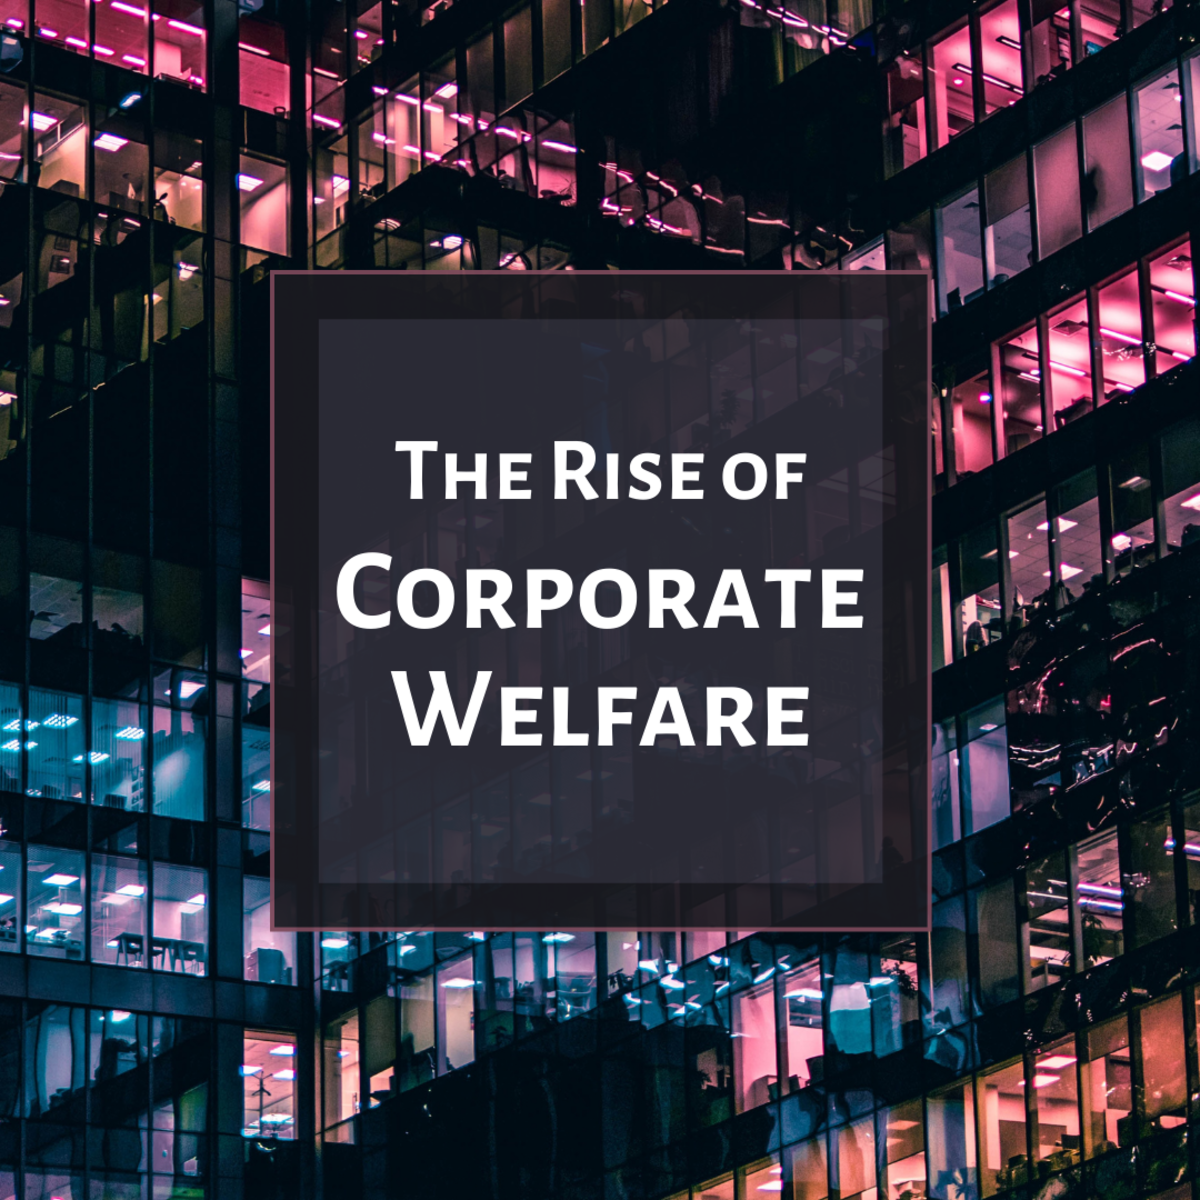 Learn about social construction theory and its applications to the increase in corporate welfare payouts.